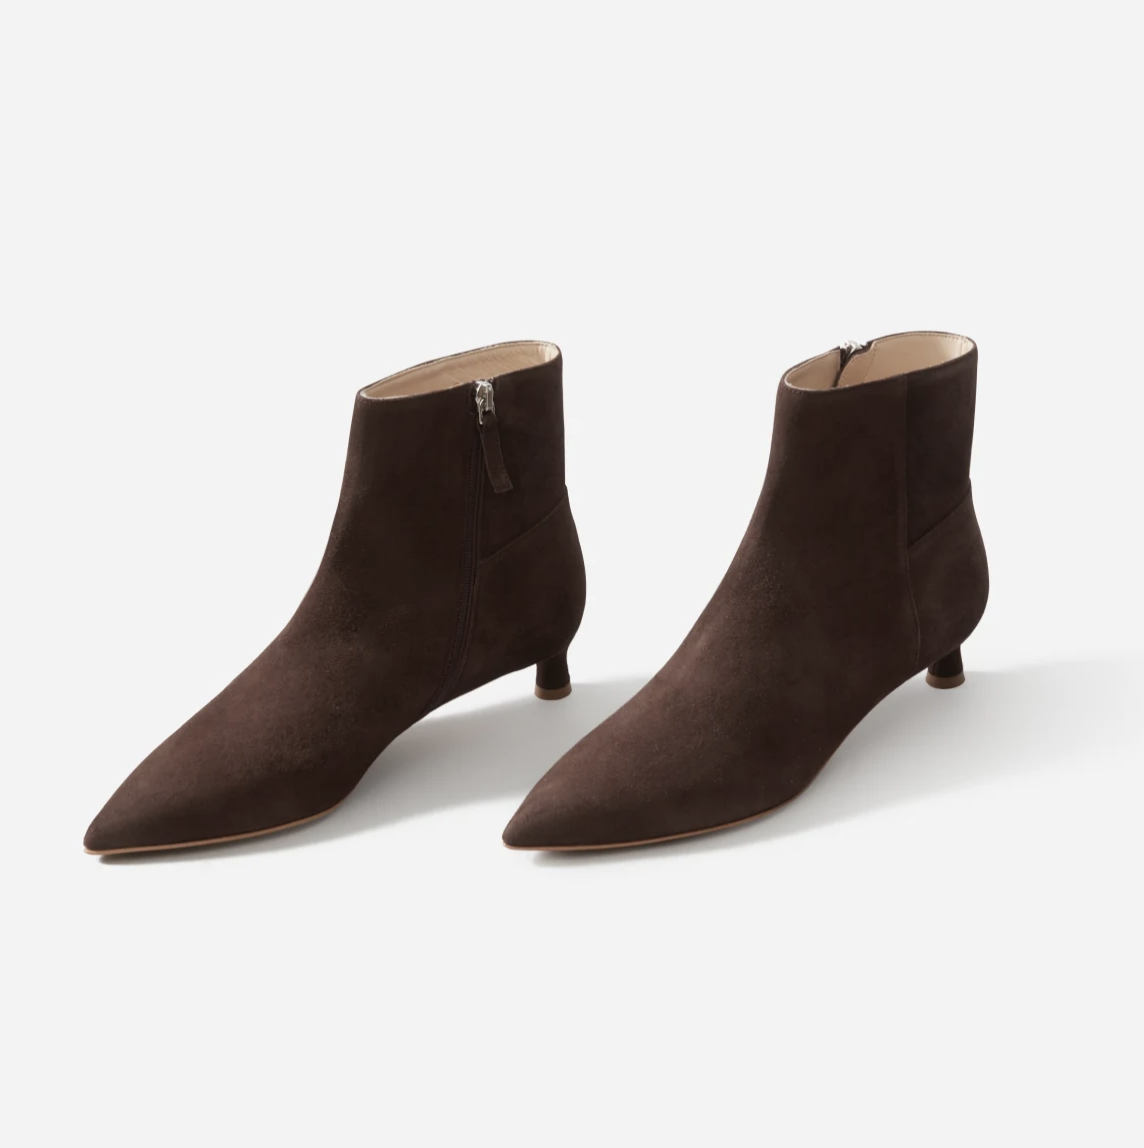 everlane-editor-boot-brown.png